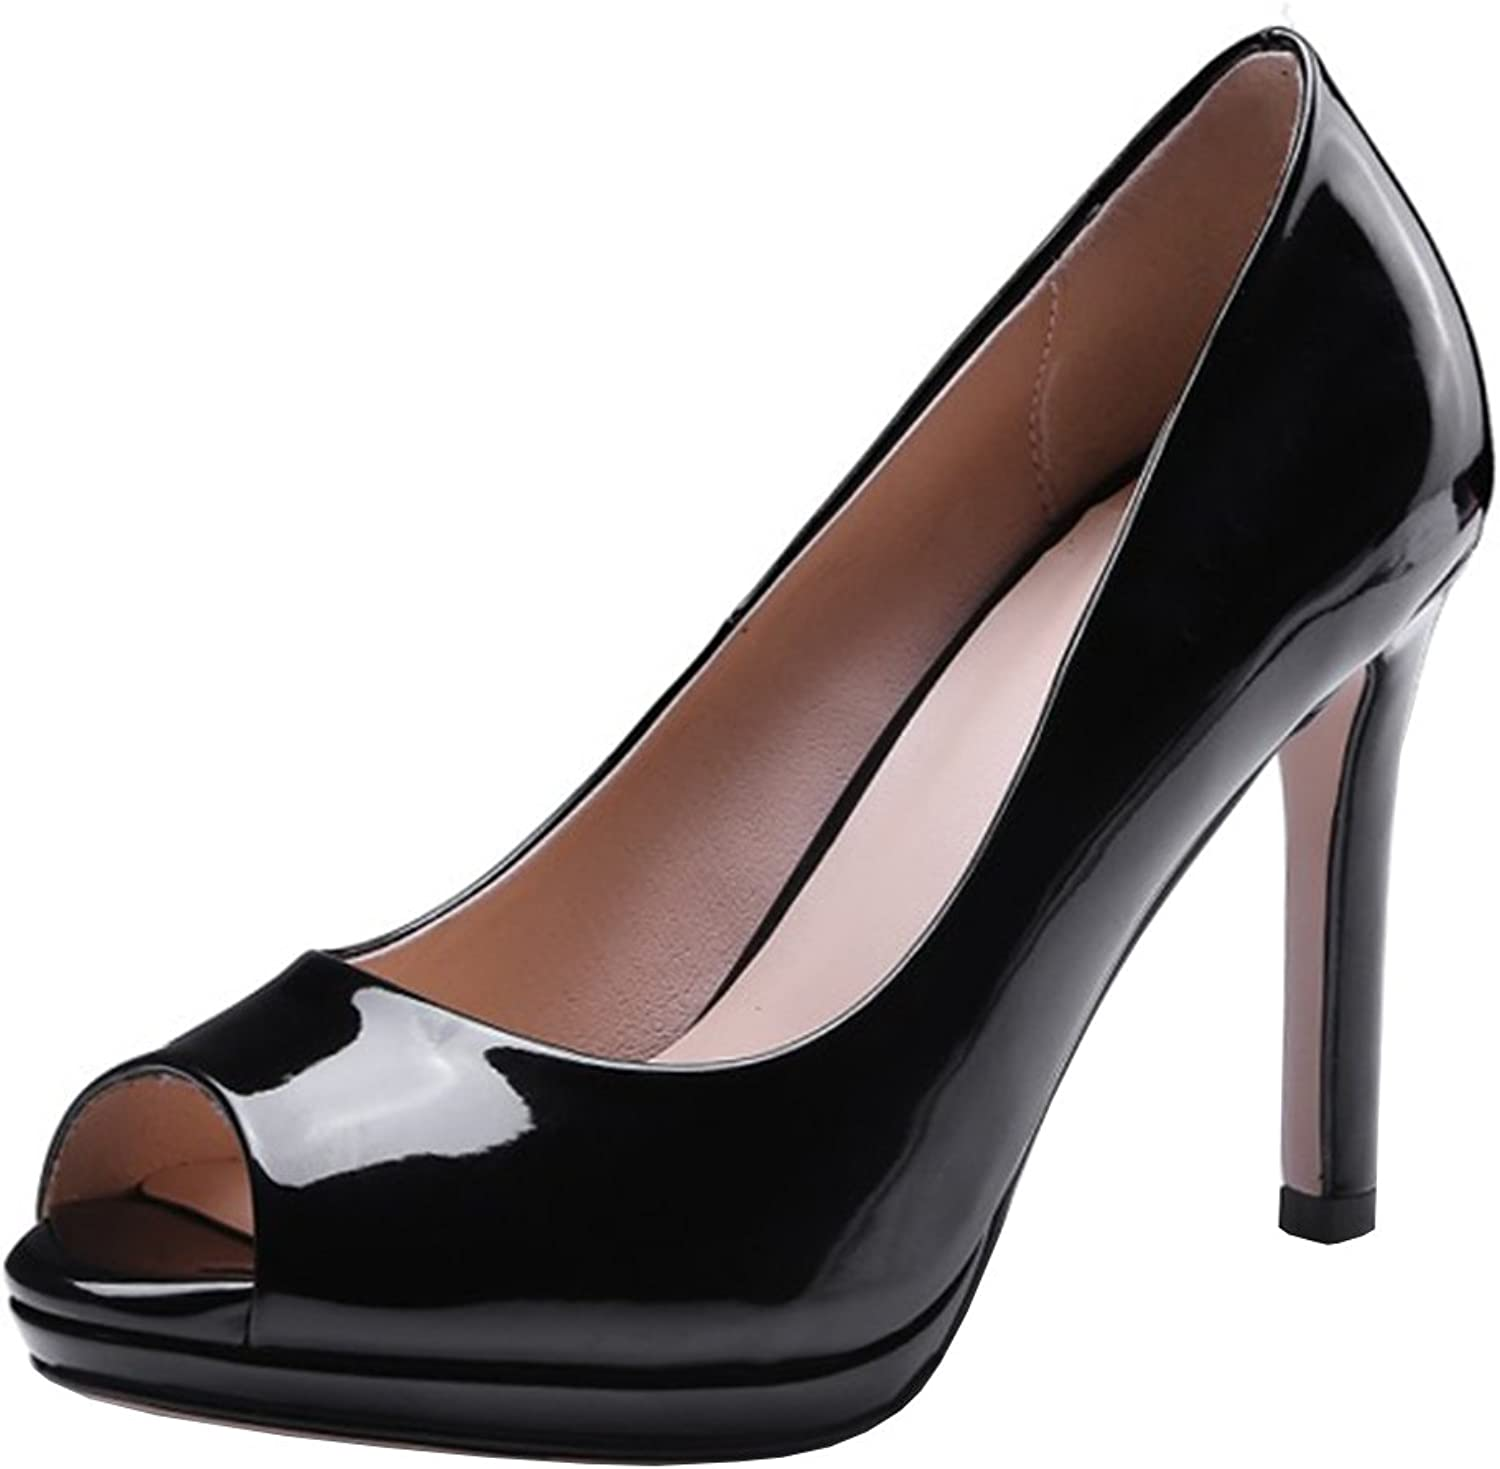 Atyche Womens High Heels Peep Toe Pumps Patent Leather Slip on Party Work Summer shoes